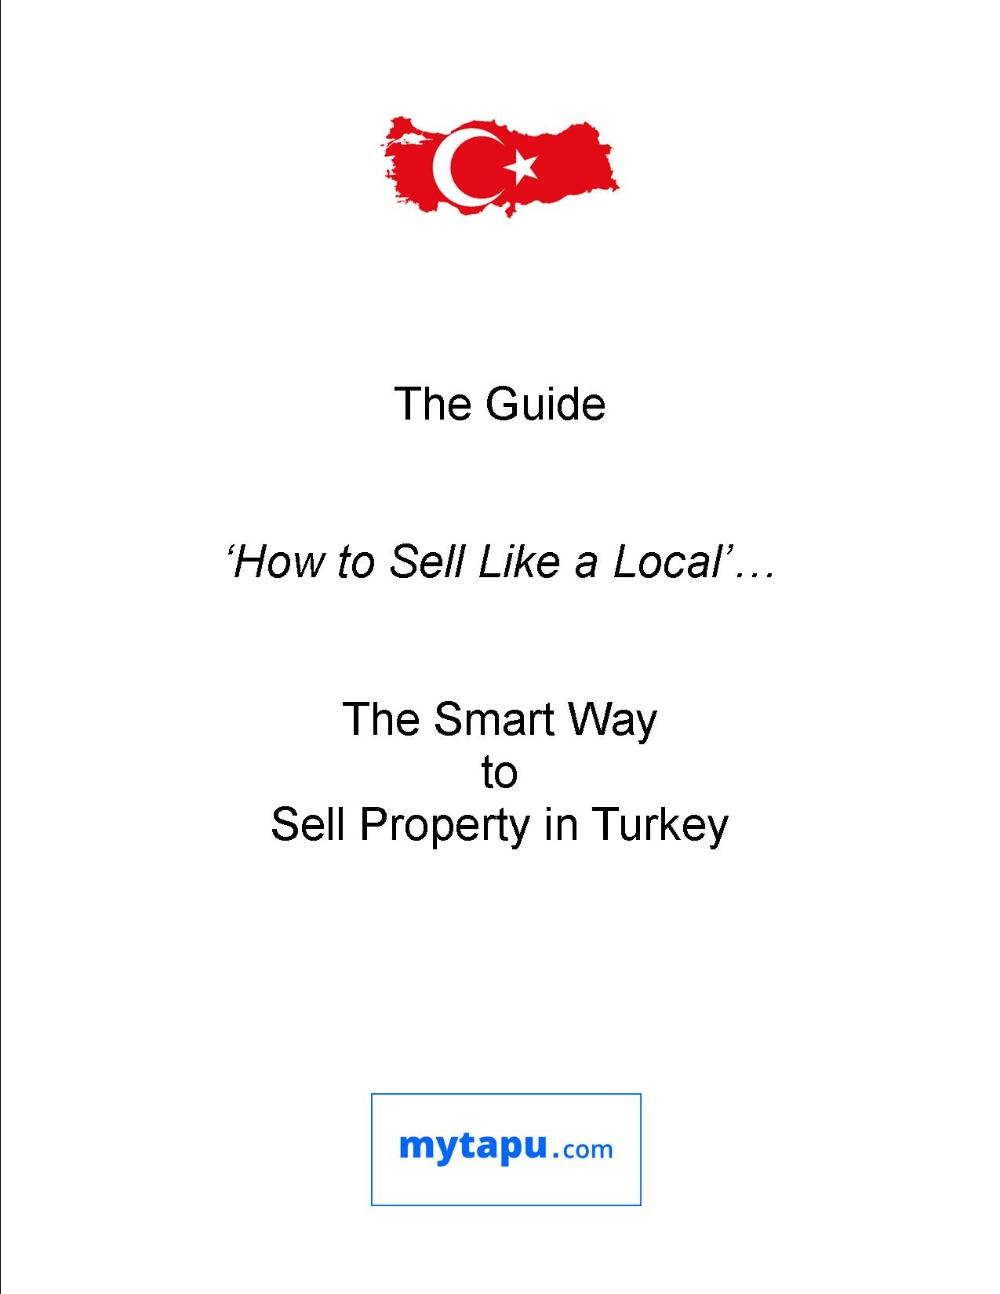 How to Sell Like a Local... The Smart Way to Sell Property in Turkey